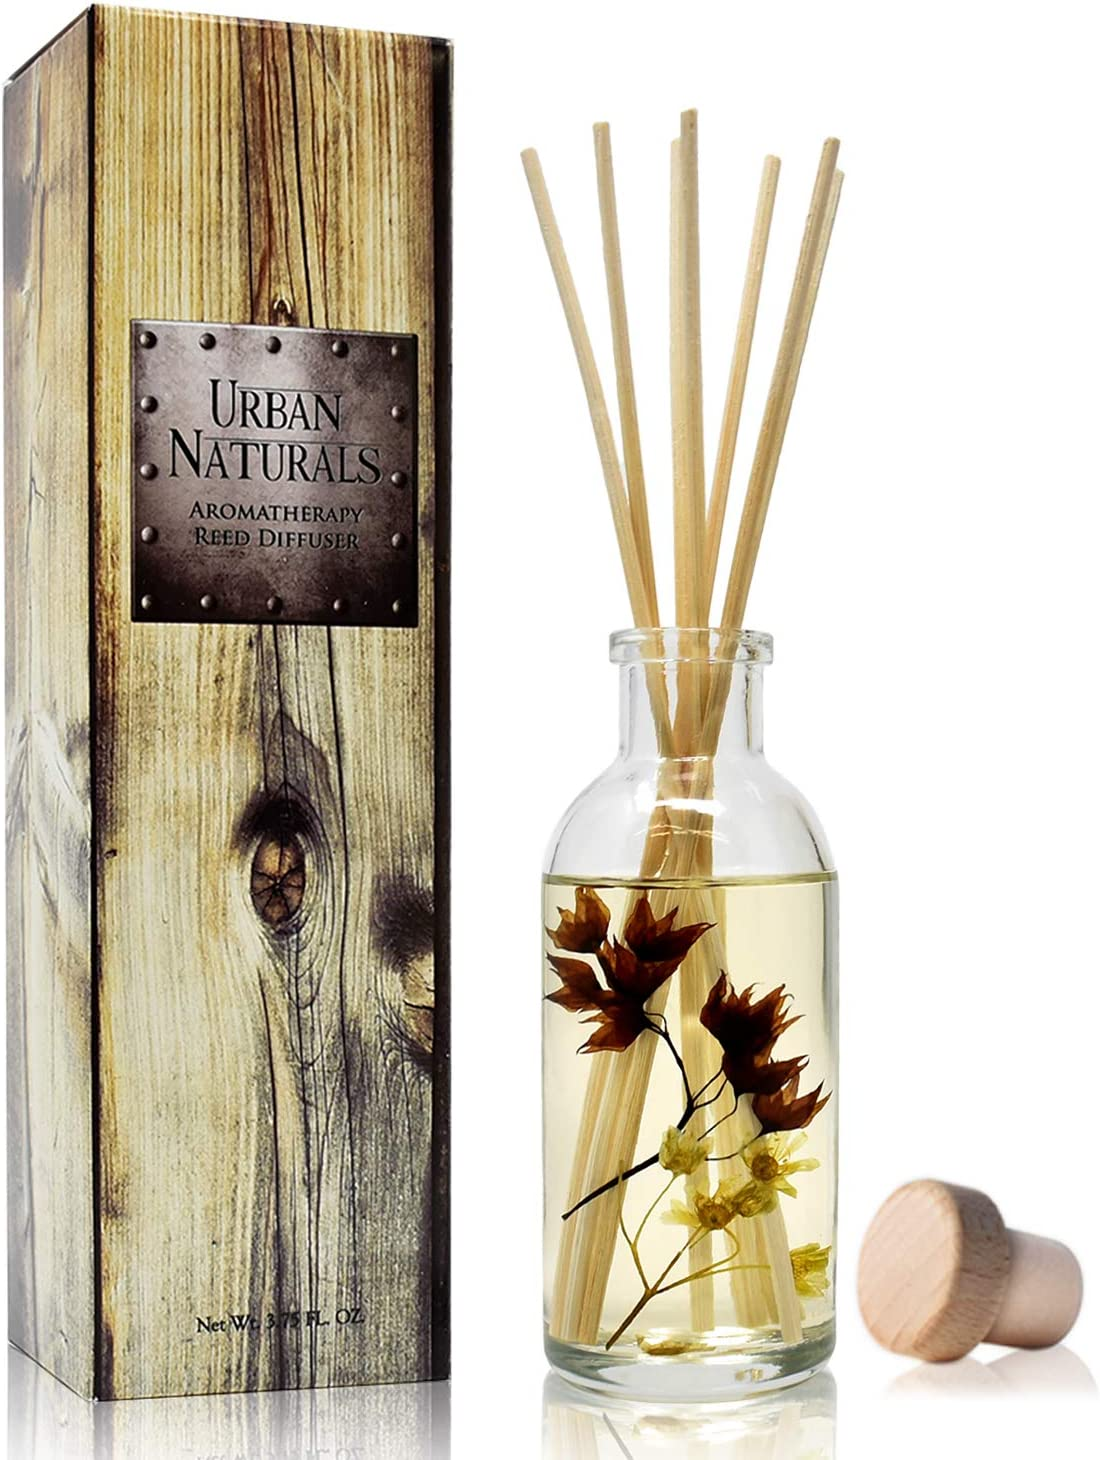 Urban Naturals Vanilla Woods Reed Diffuser Scent Sticks Gift Set | Smoked Vanilla Bean, Tonka Bean, Birchwood & Sandalwood | Light Woodsy Scent Made with Essential Oils & Real Botanical Pieces